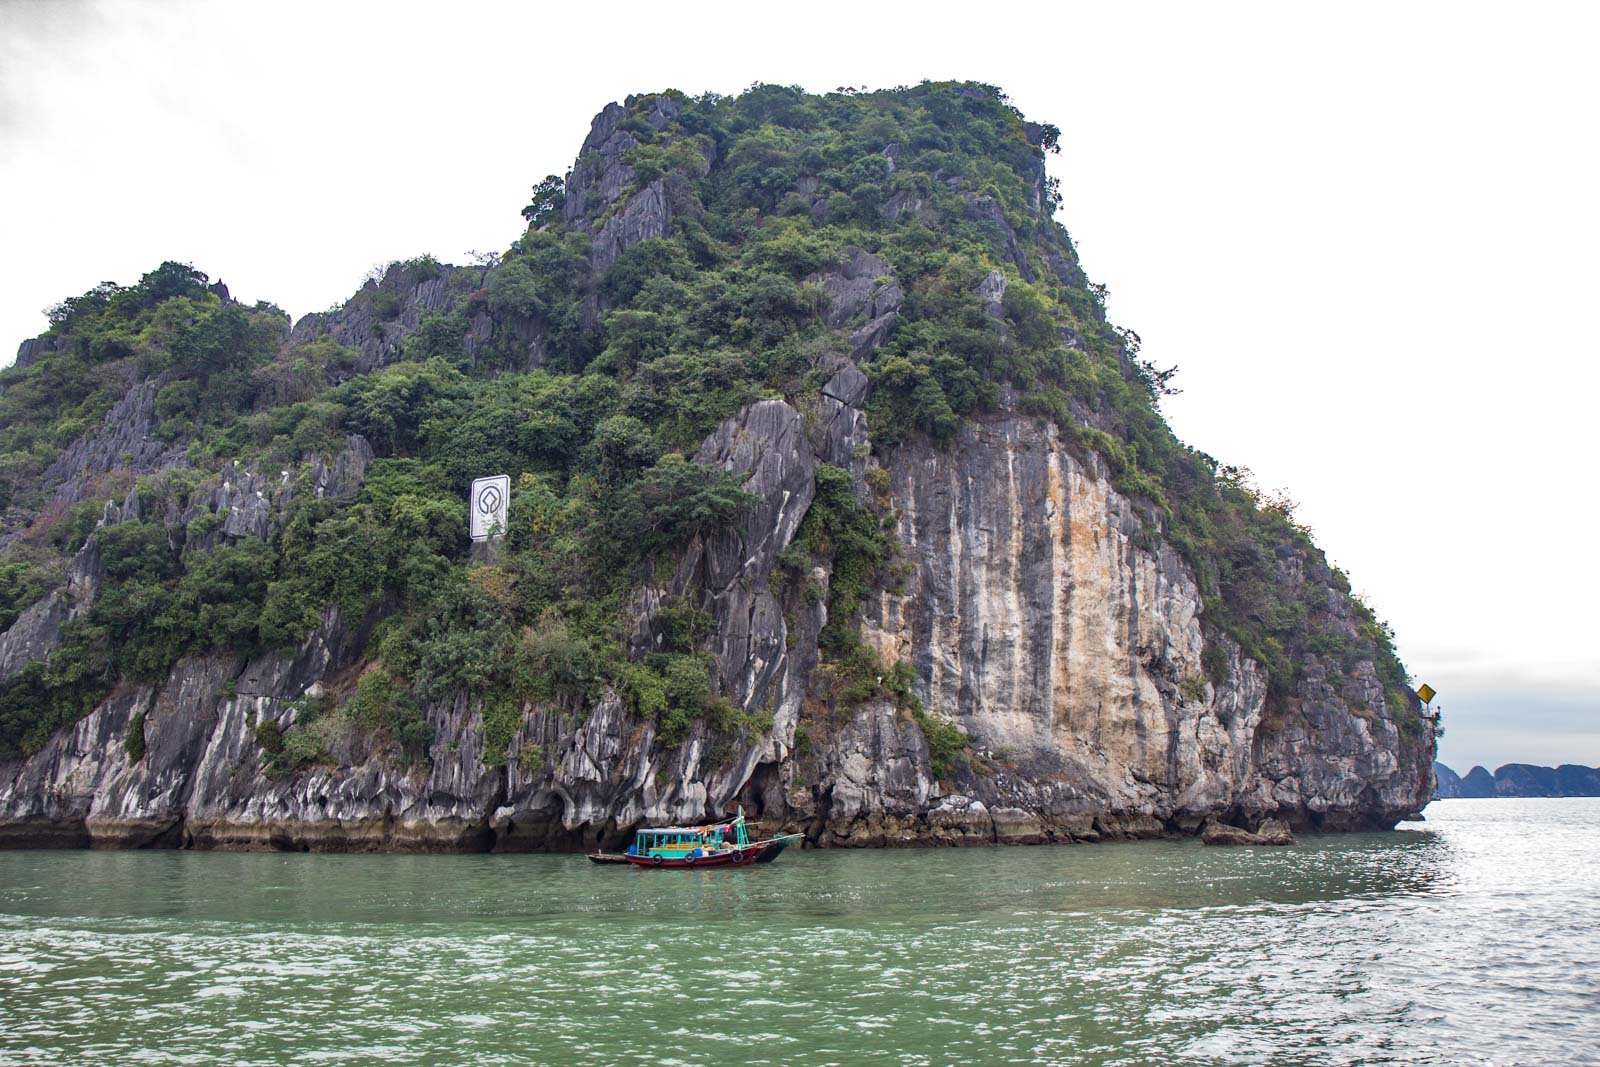 Choosing a Ha Long Bay tour, Vietnam